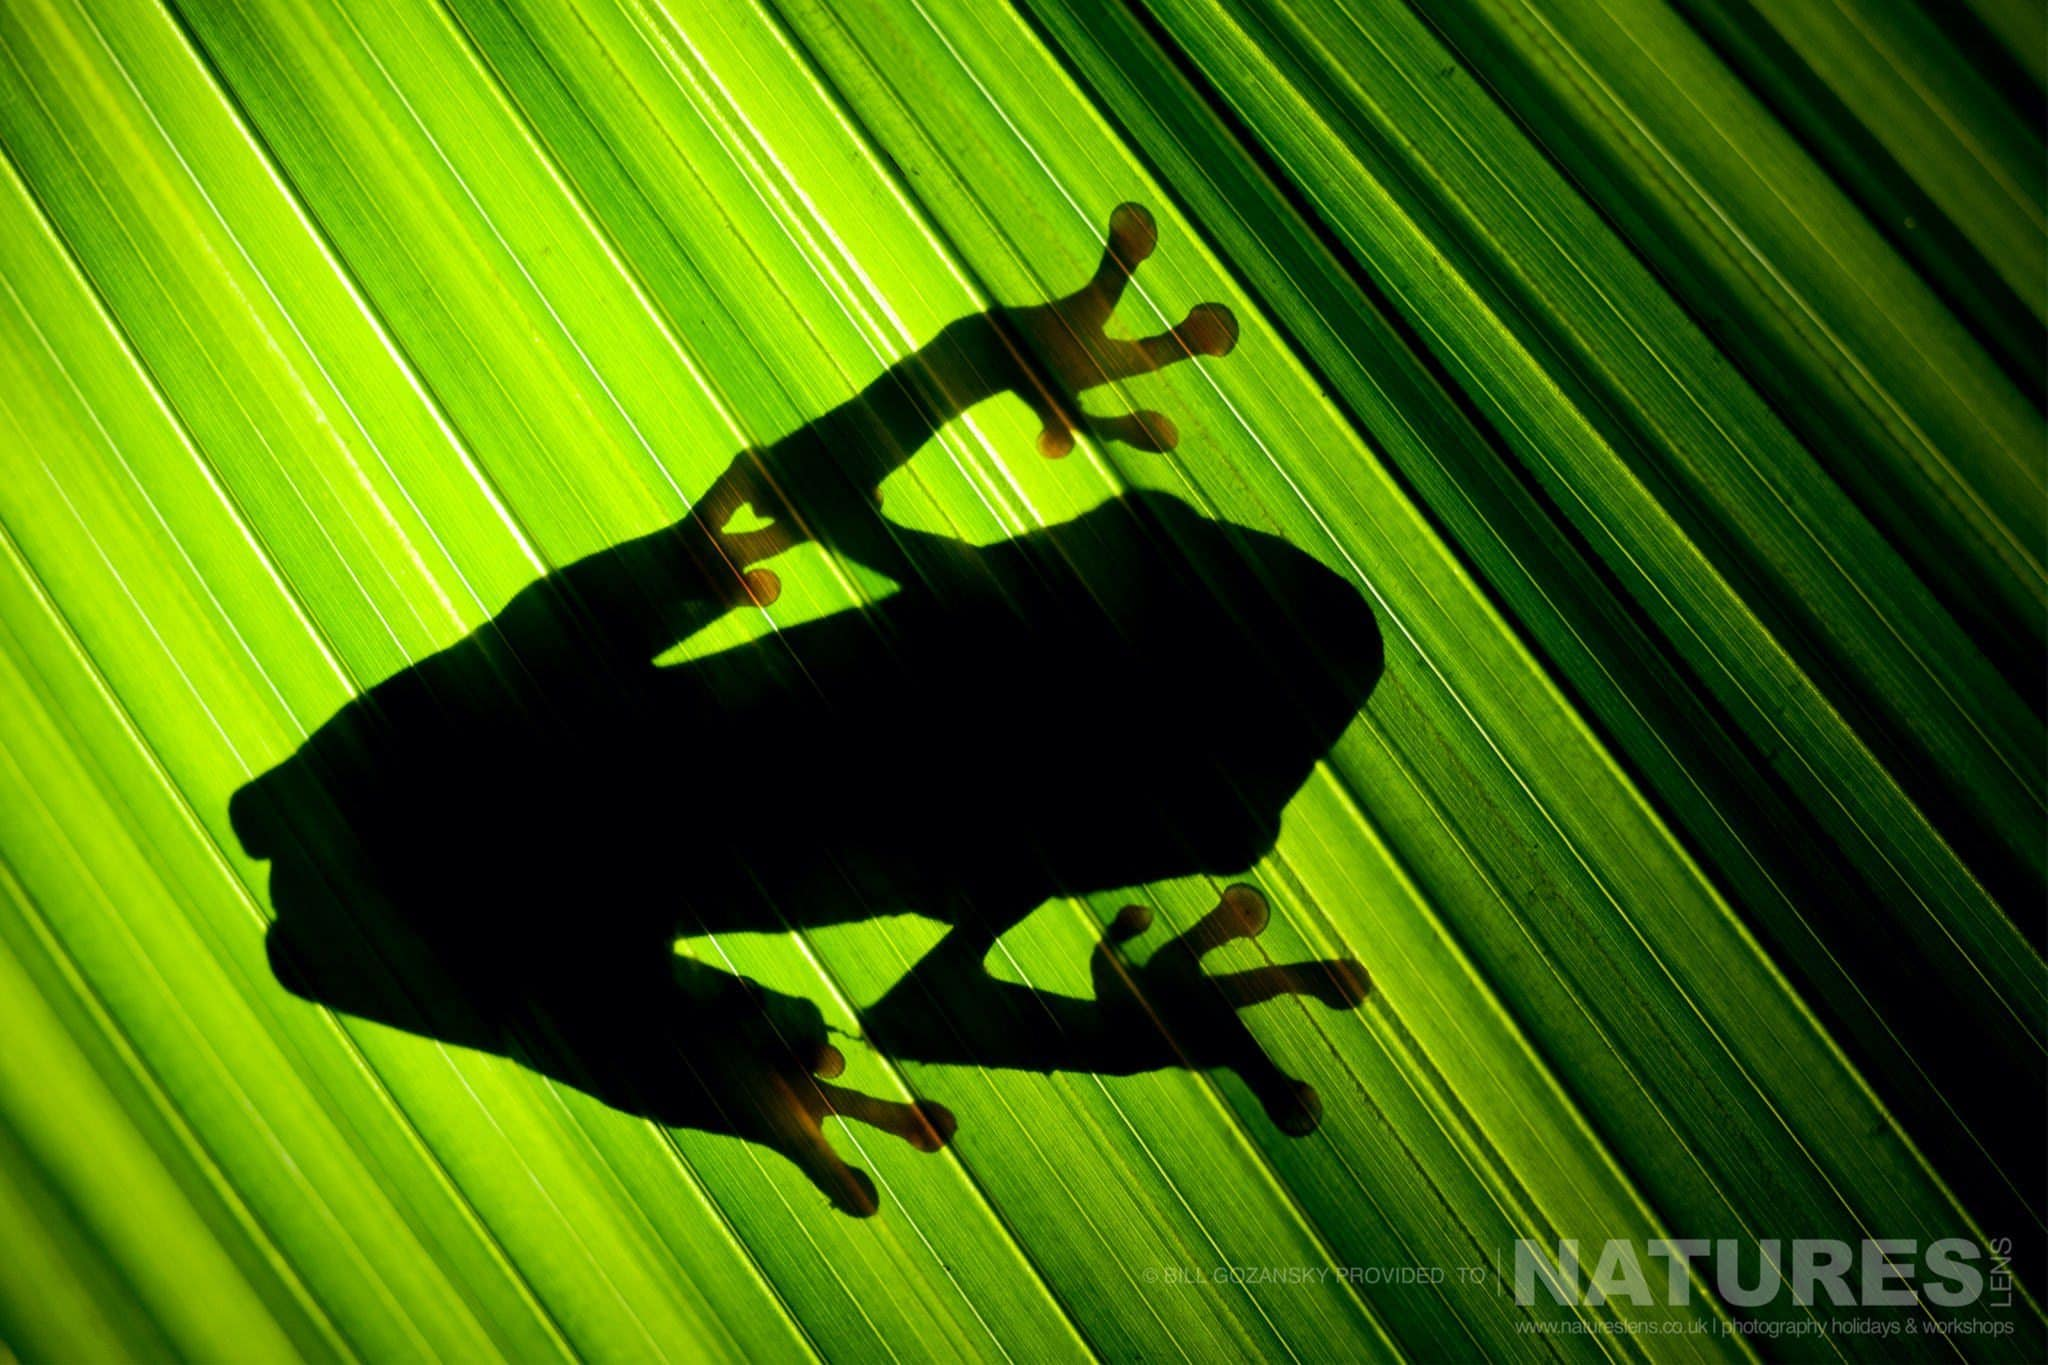 The silhouette of a red-eyed tree frog photographed at one of the locations that feature on the NaturesLens Wildlife of Costa Rica Photography Holiday